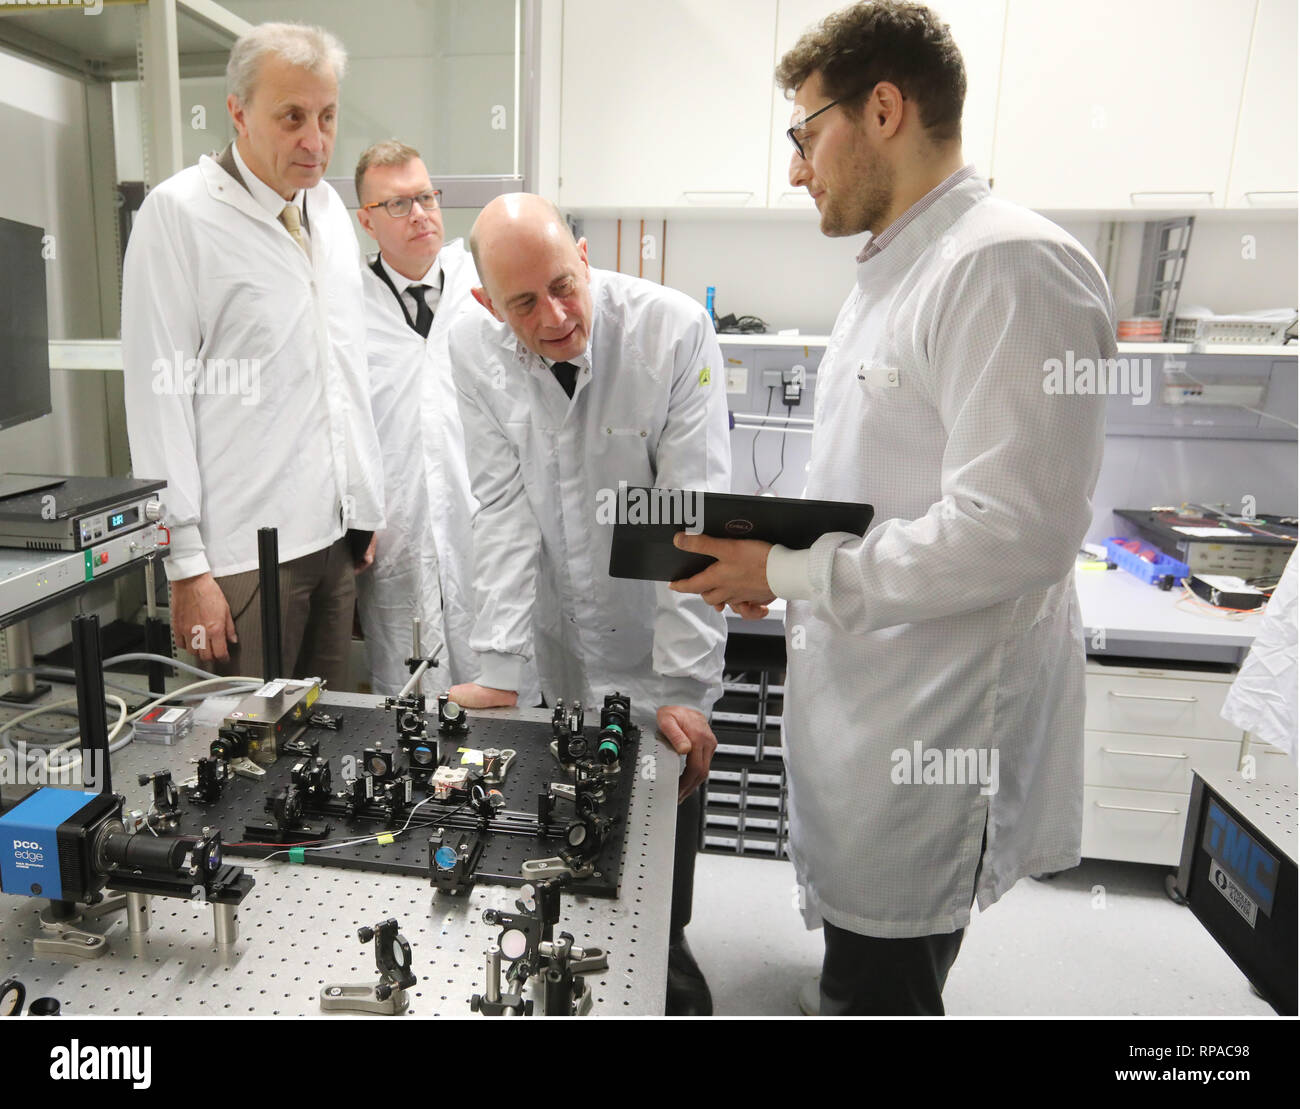 4c88b7a2b98032 R And Professor Stock Photos   R And Professor Stock Images - Page 3 ...